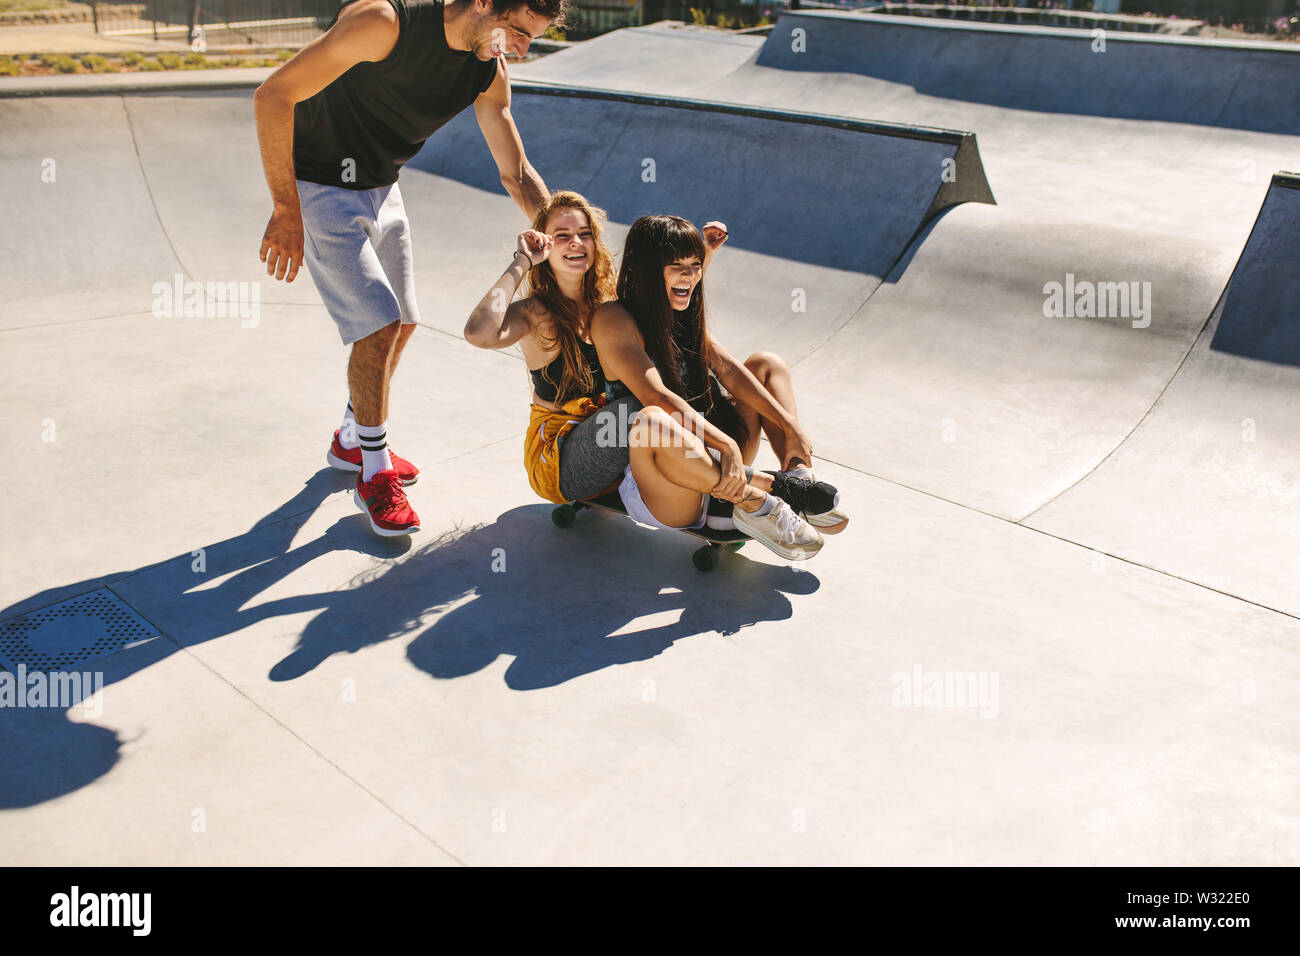 Group of friends having fun at skate park. Young man and two girls playing with a skateboard at skate park. Stock Photo